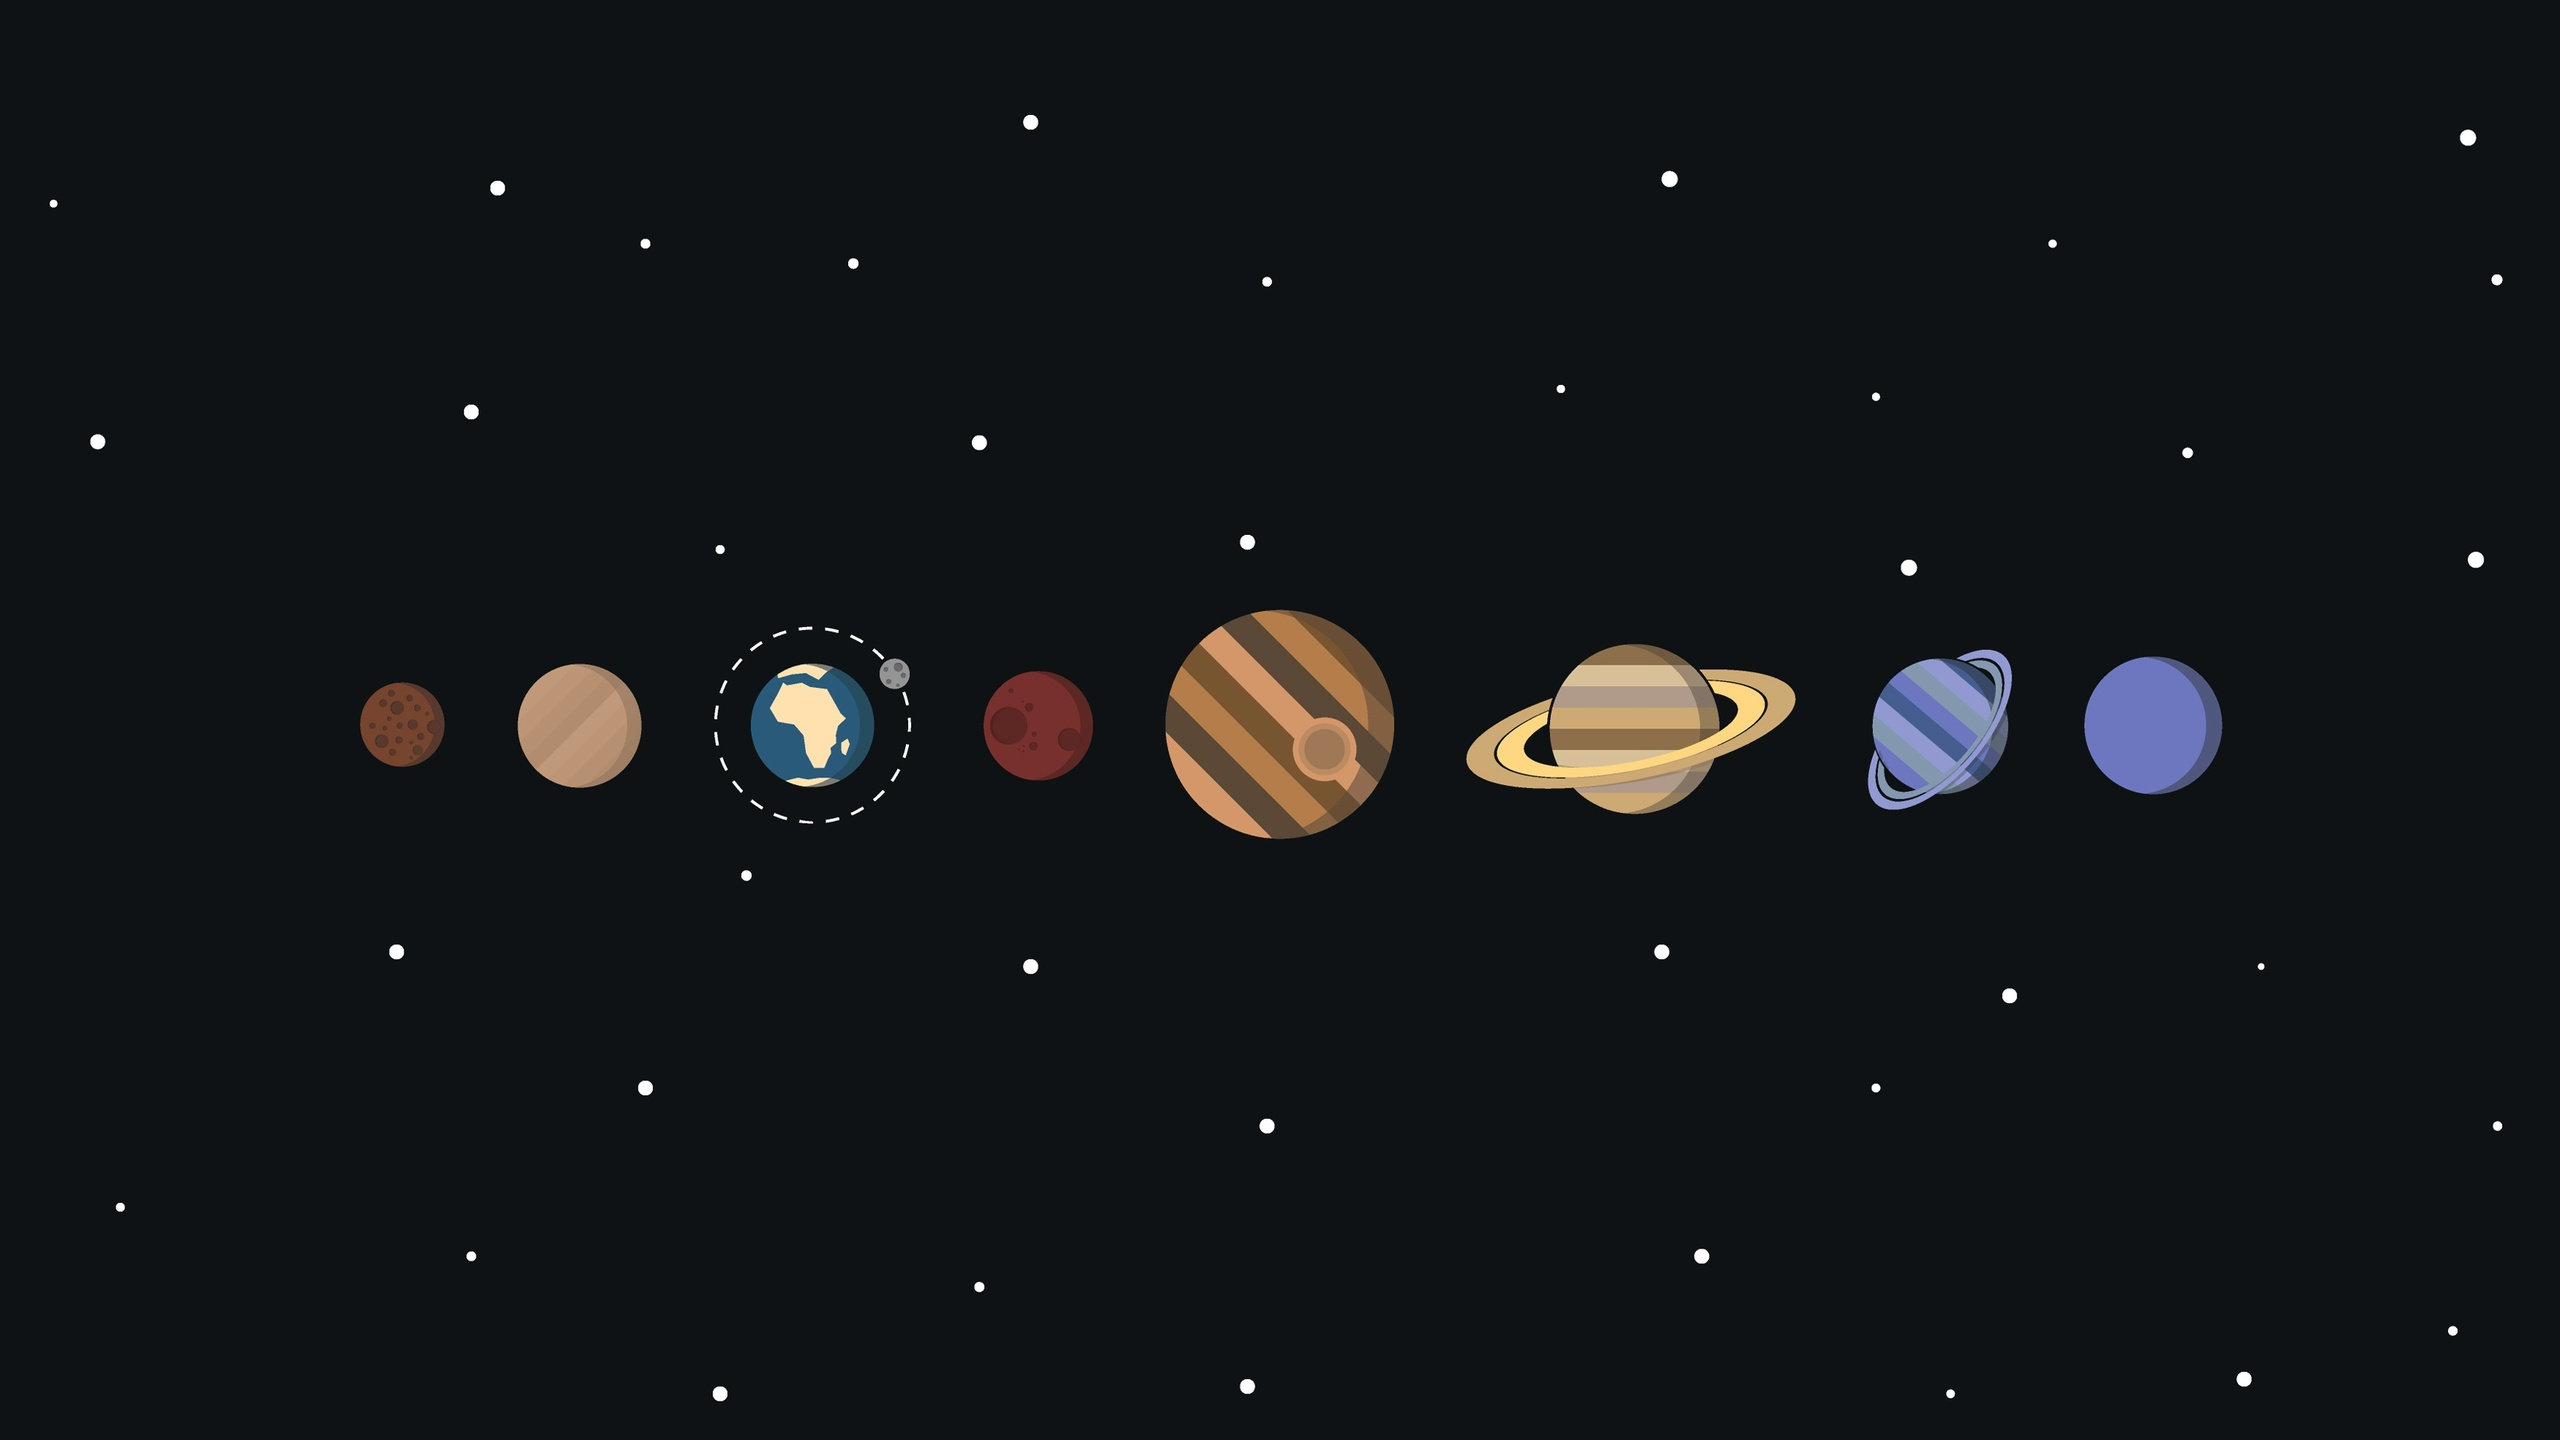 2560x1440 Solar System Minimalism 1440P Resolution HD 4k Wallpapers, Images, Backgrounds, Photos and Pictures